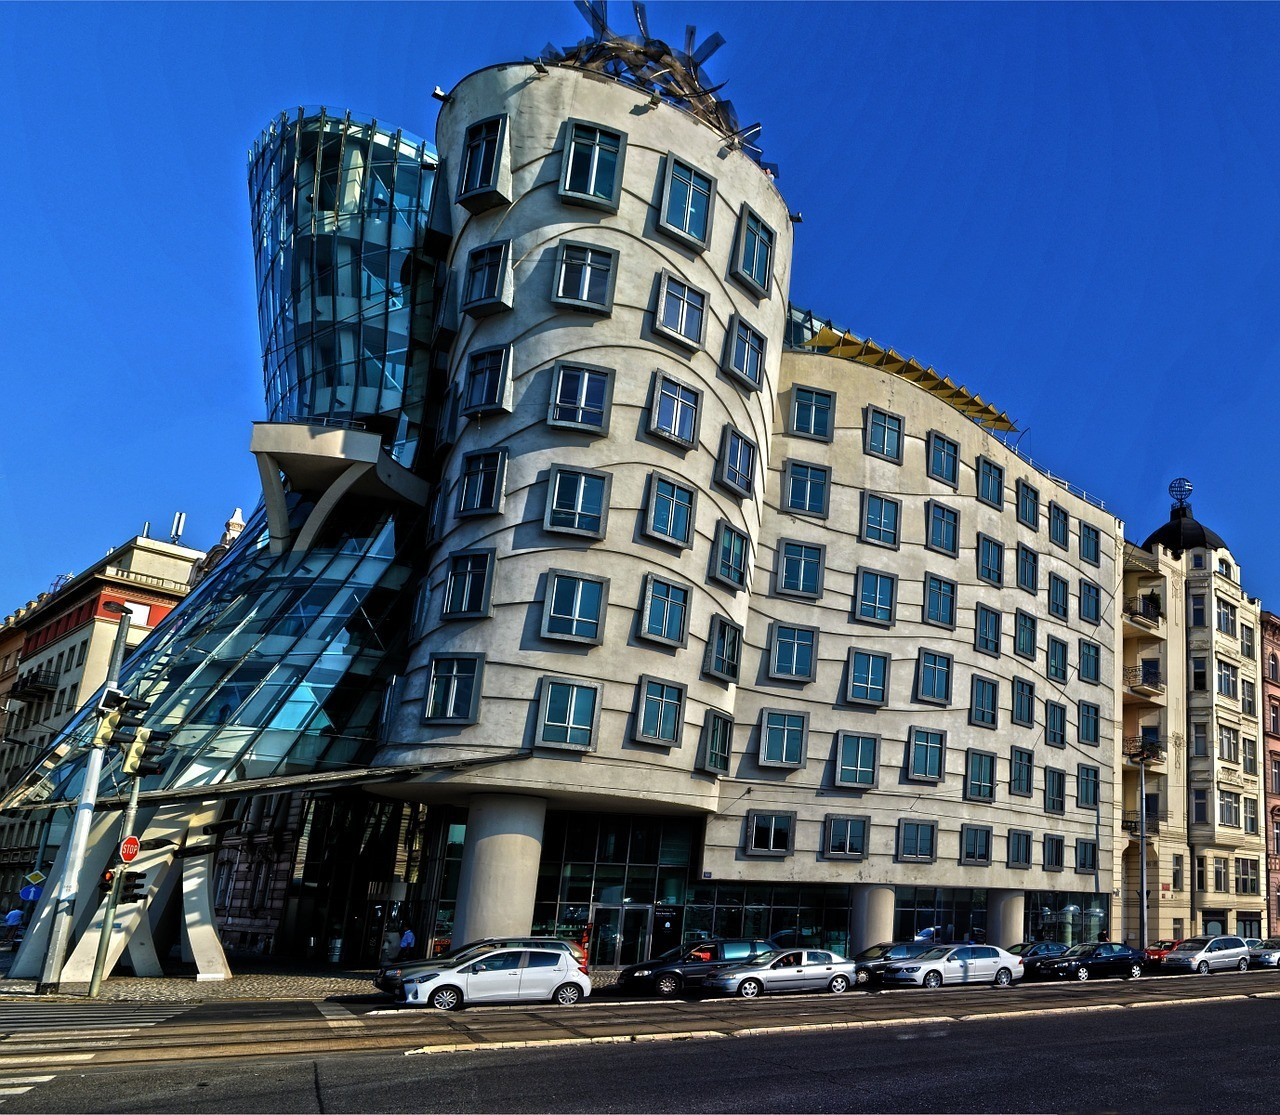 The Dancing House of Prague